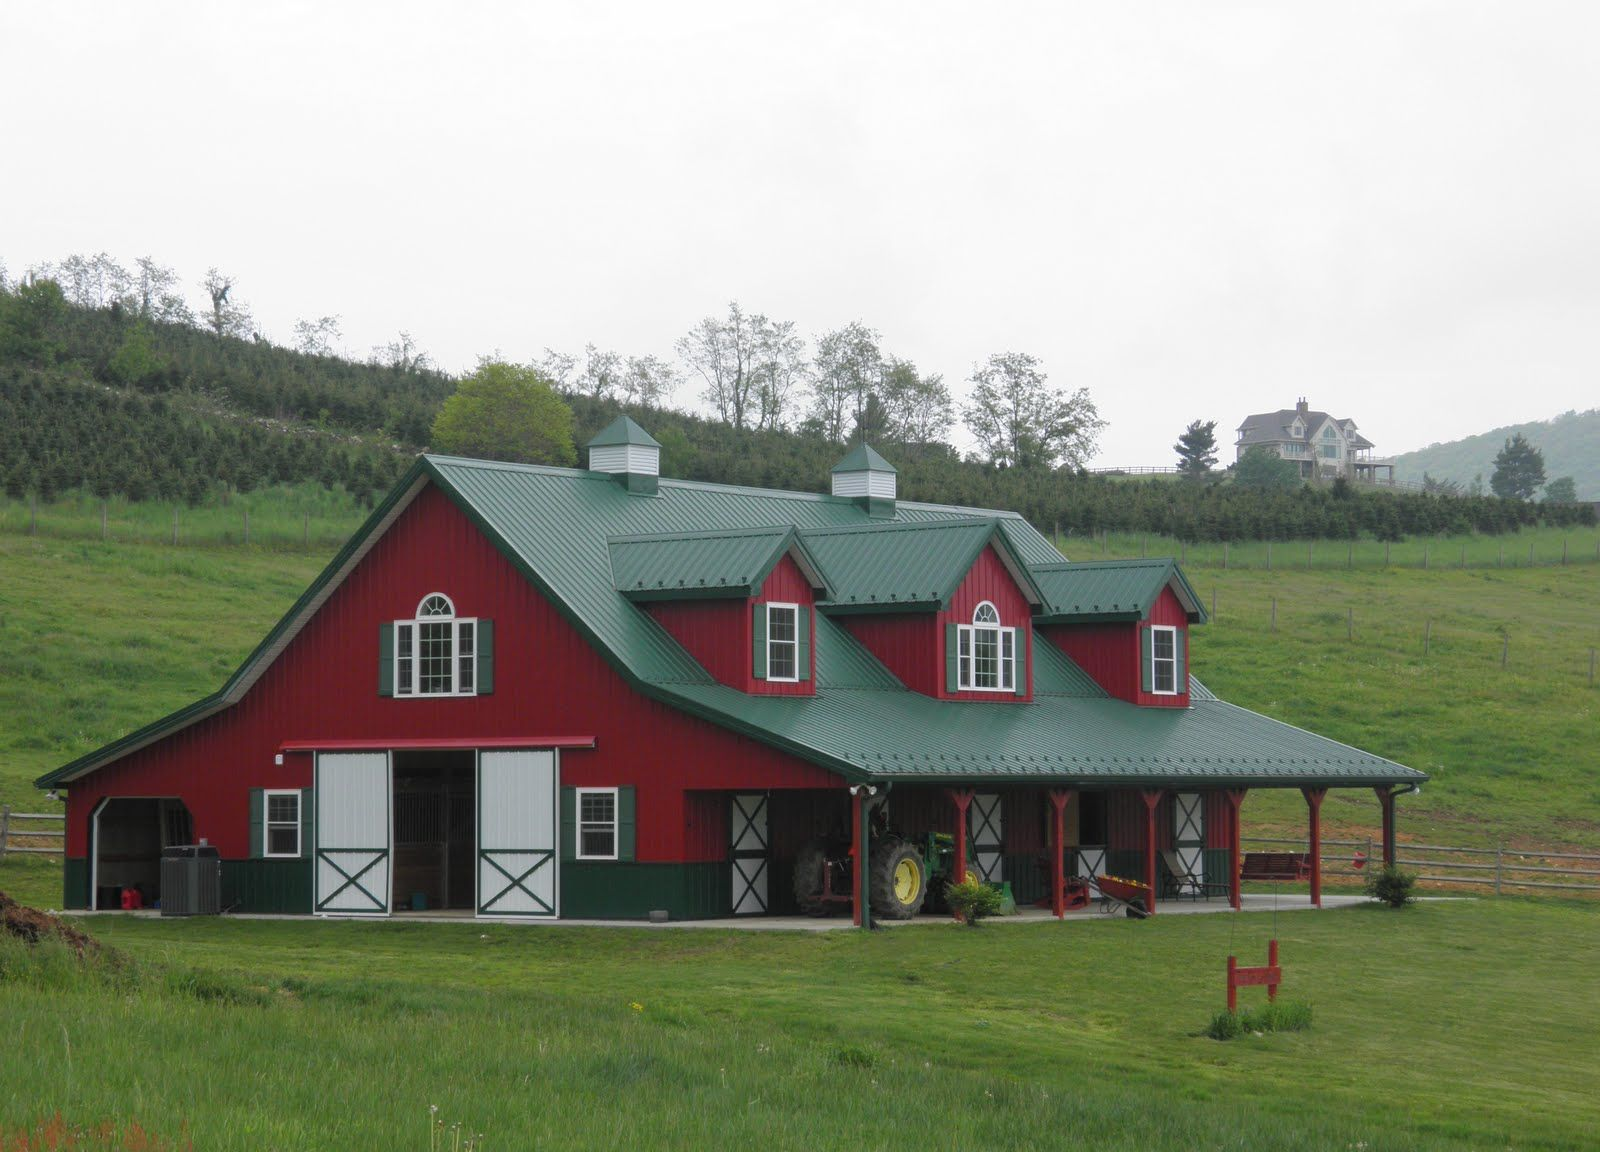 House that looks like red barn images at home in the for Home building kits texas